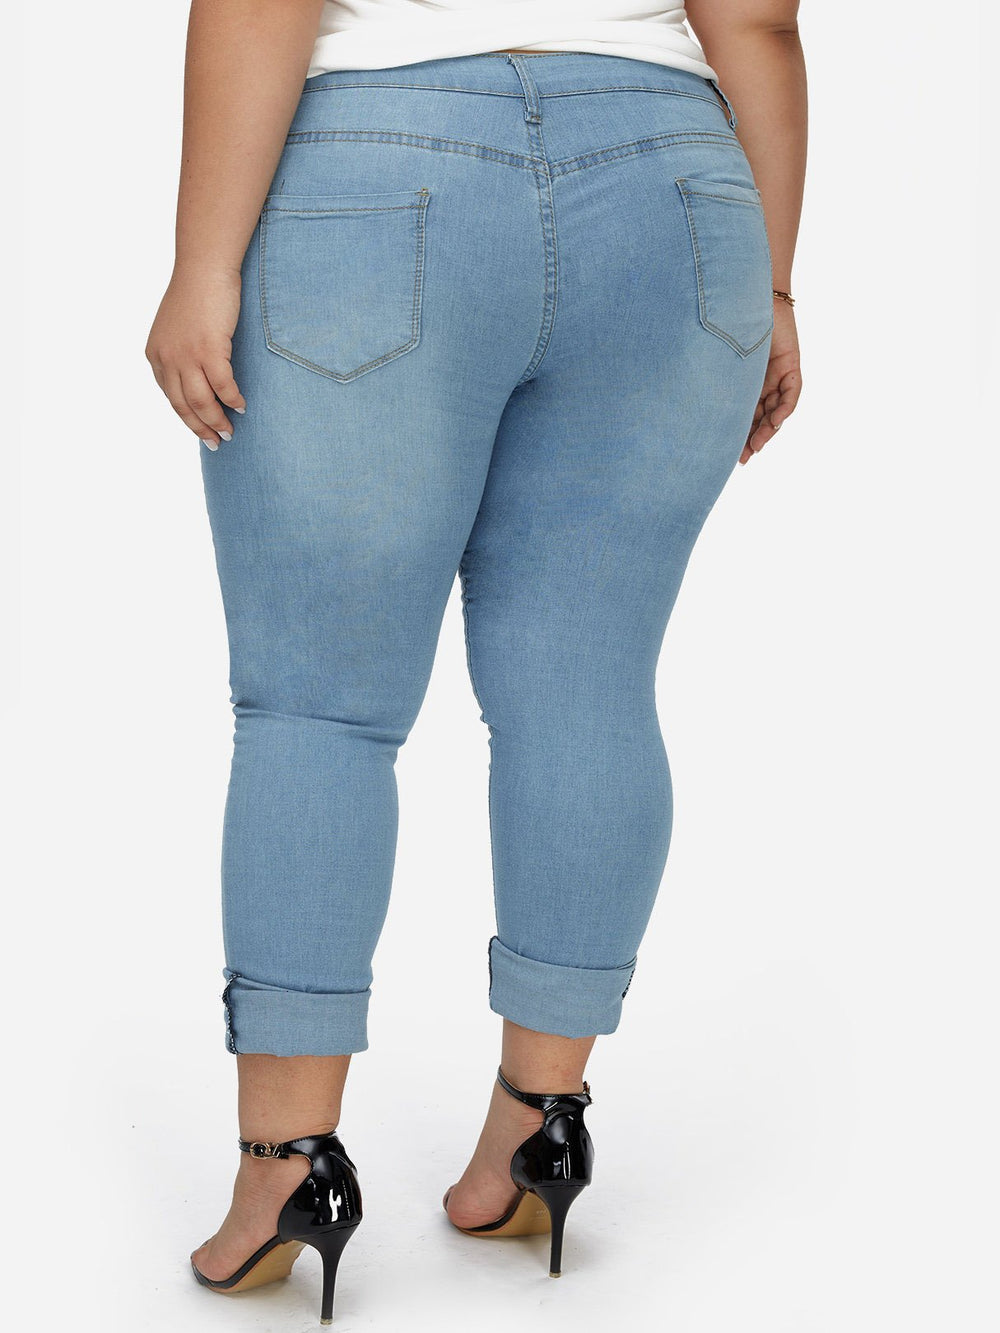 Womens Plus Size Bottoms